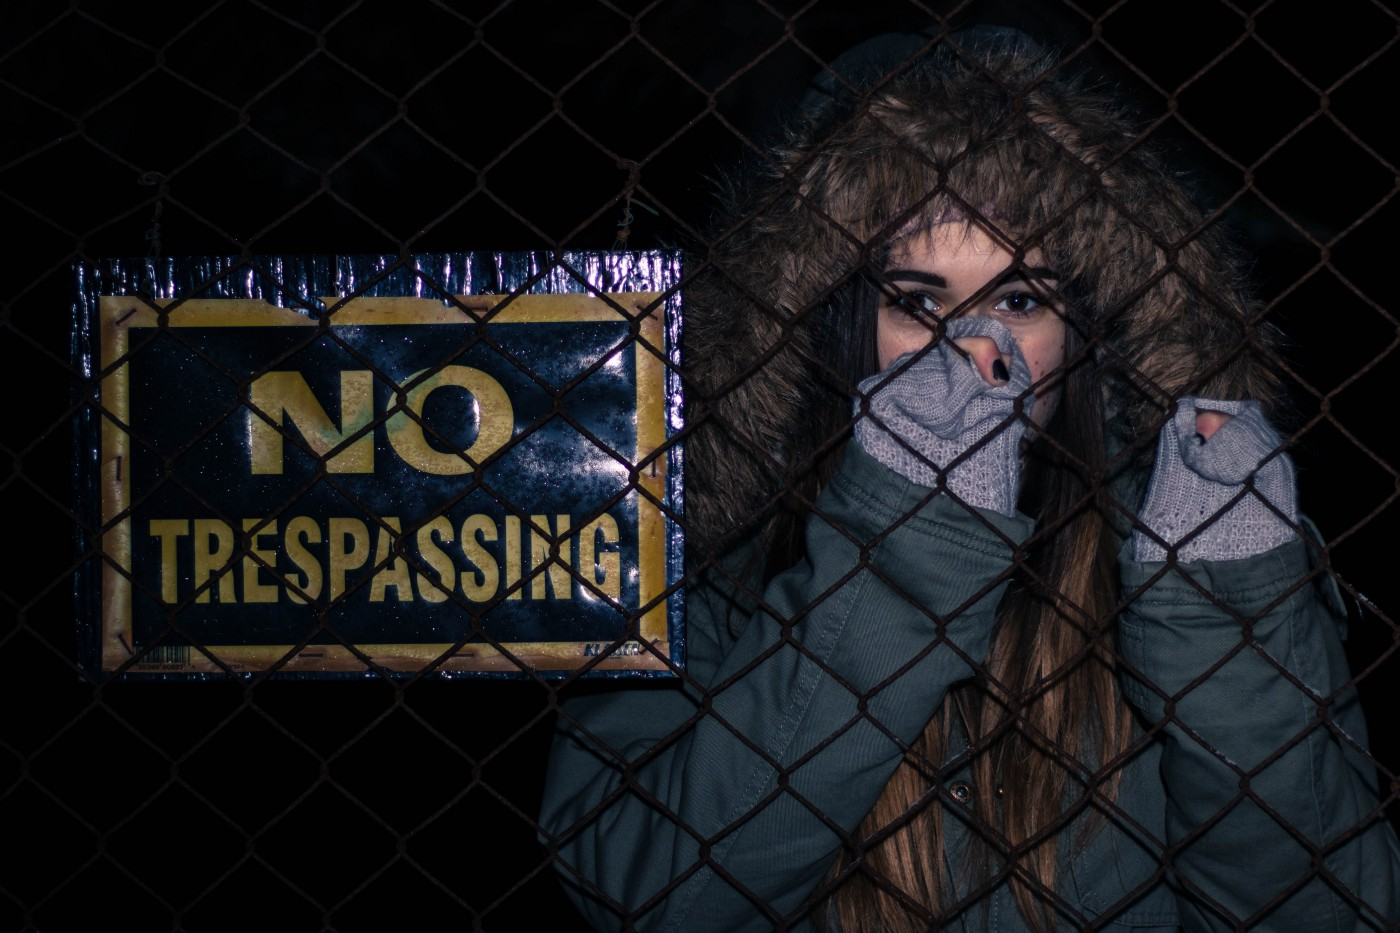 woman, afraid, standing behind fence with NO TRESPASSING sign